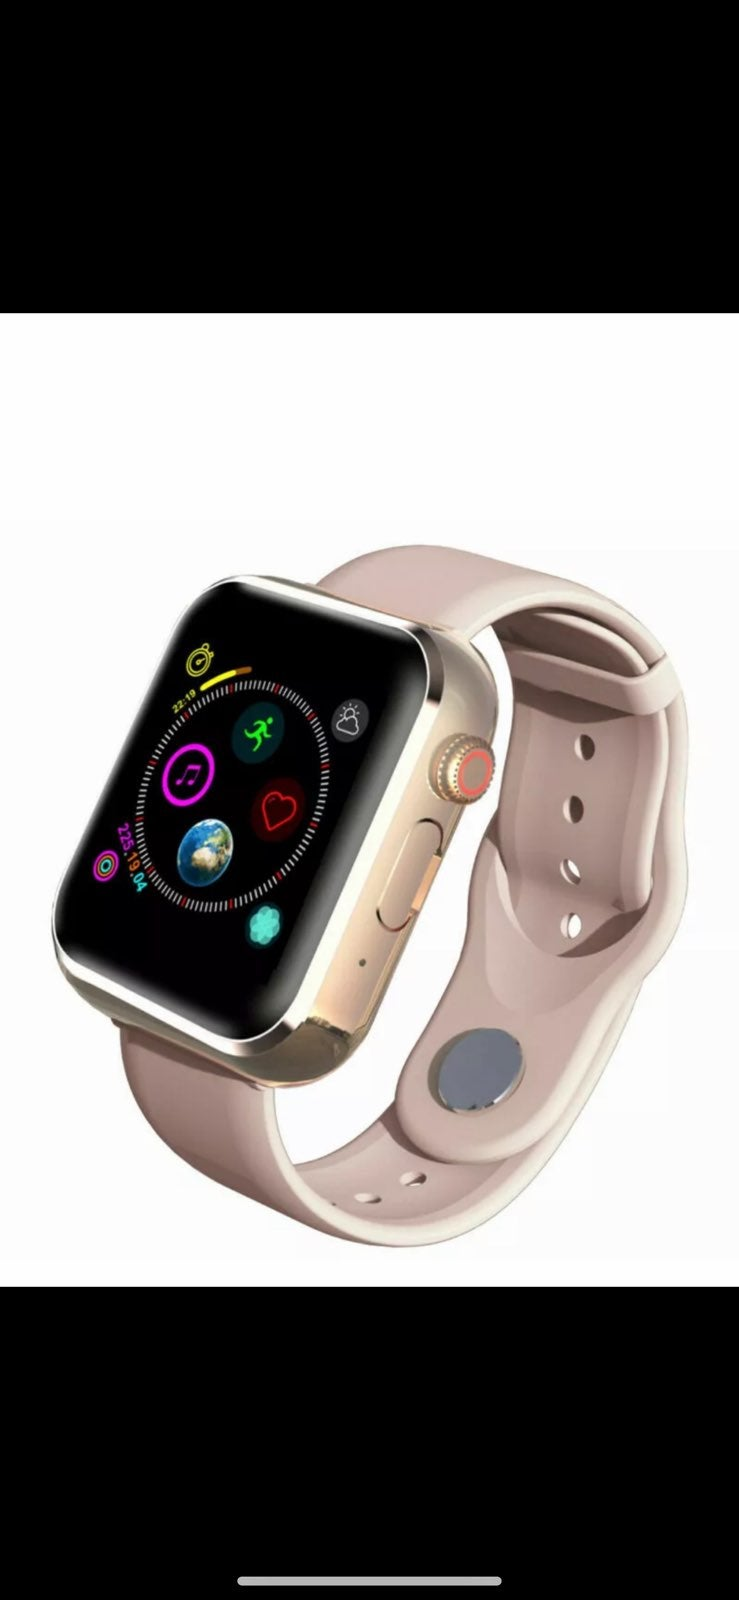 New Rose Gold Smart Watch iPhone Android